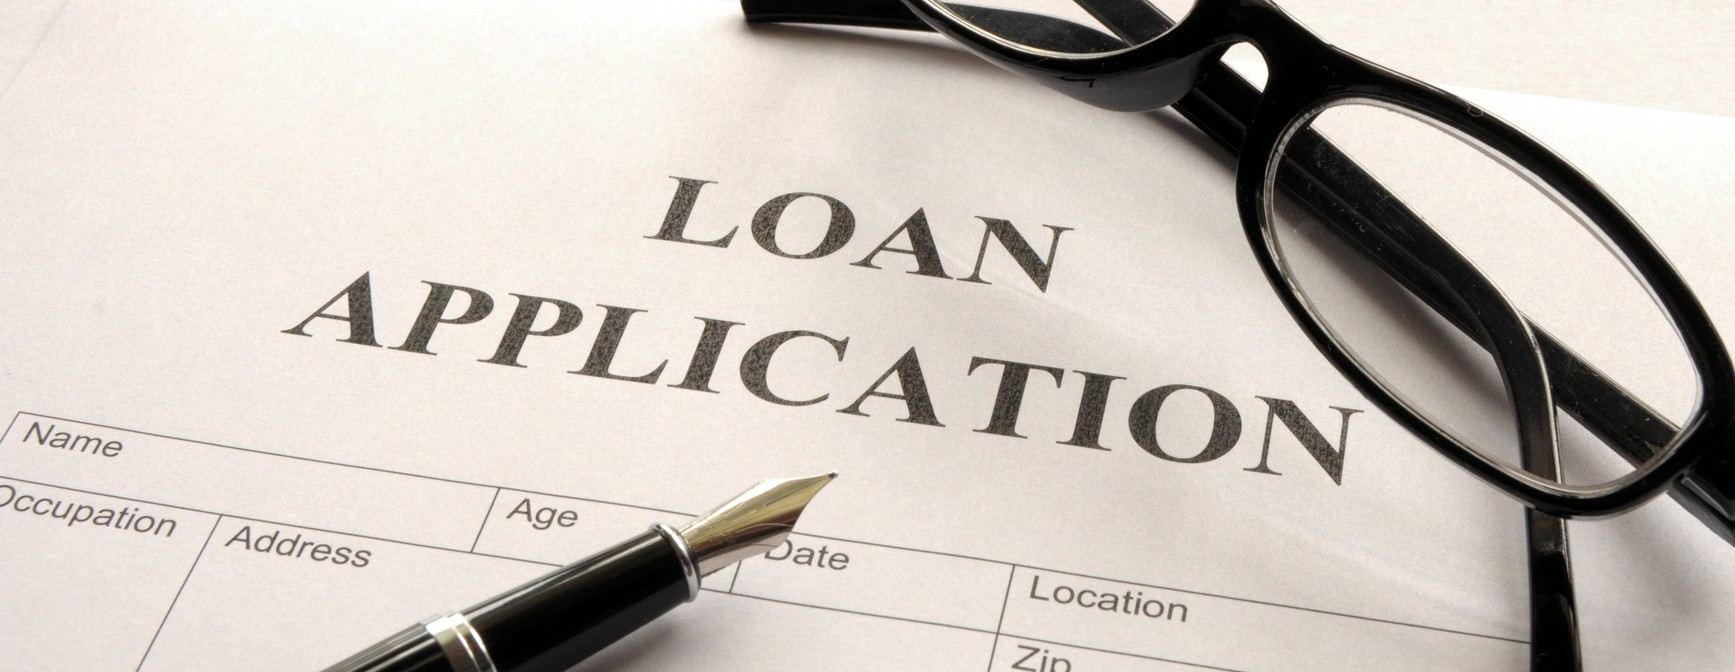 http://usefulfinance.com/wp-content/uploads/2013/09/small-personal-loan-application.jpg